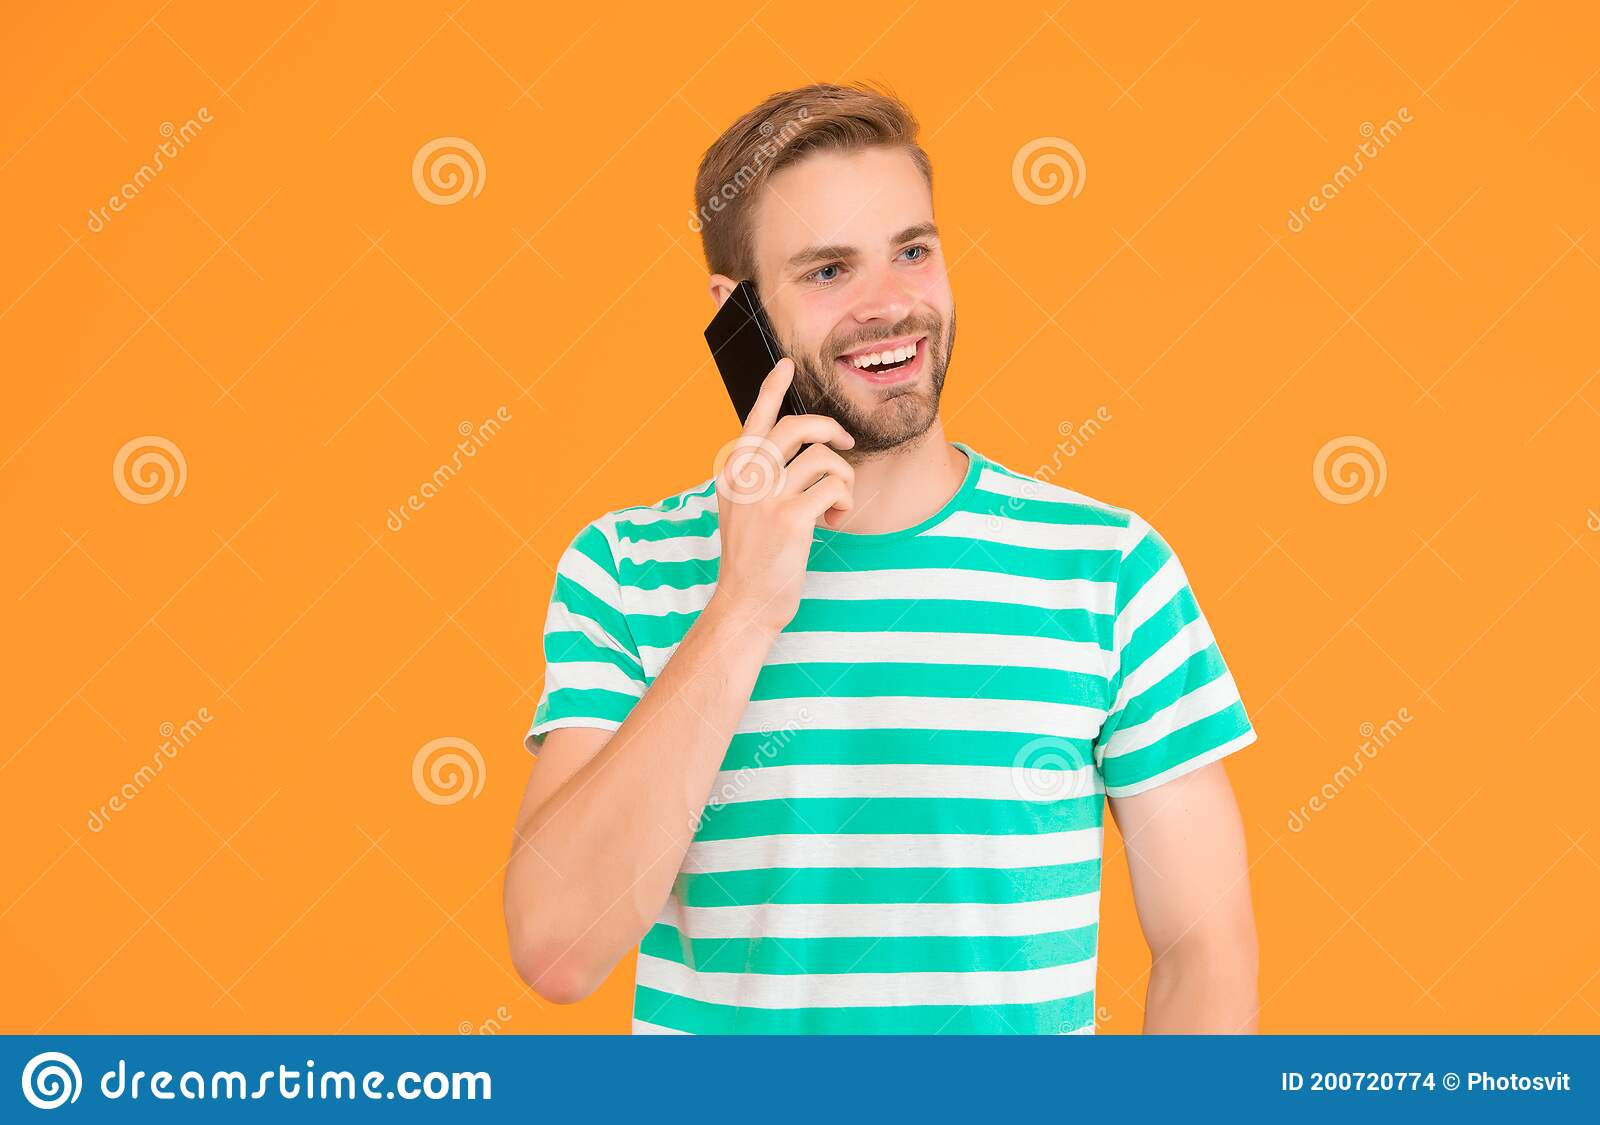 Communication pictures of verbal Verbal Communication: